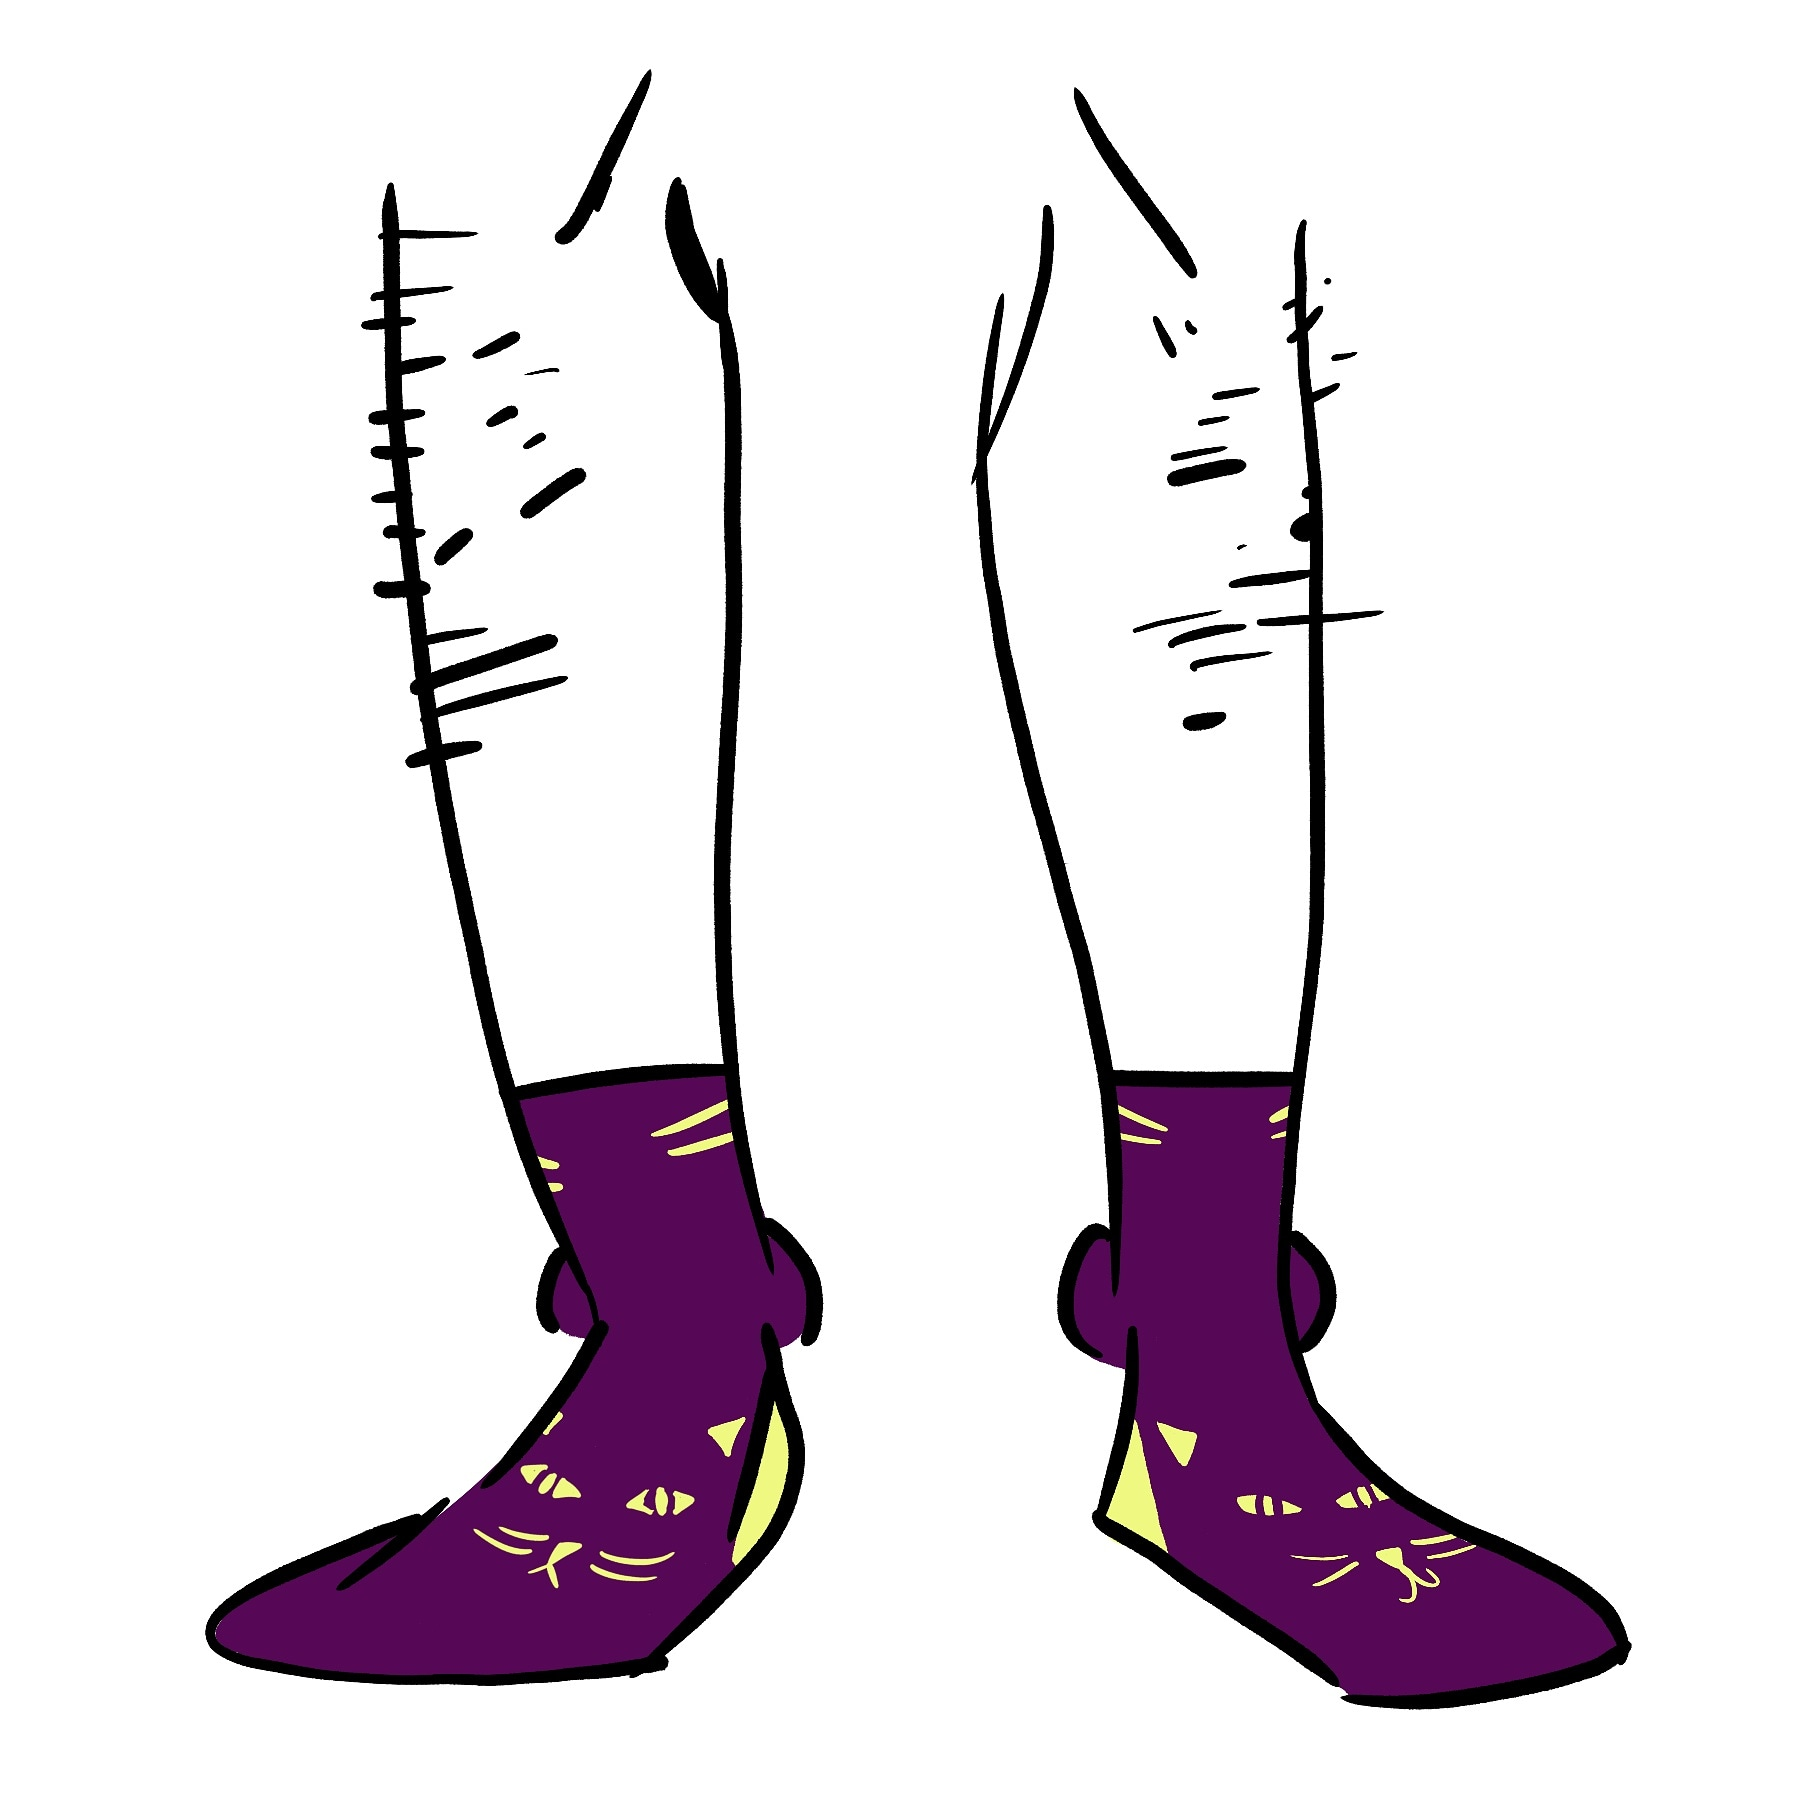 Purple socks with yellow cat eyes and yellow cat whiskers.